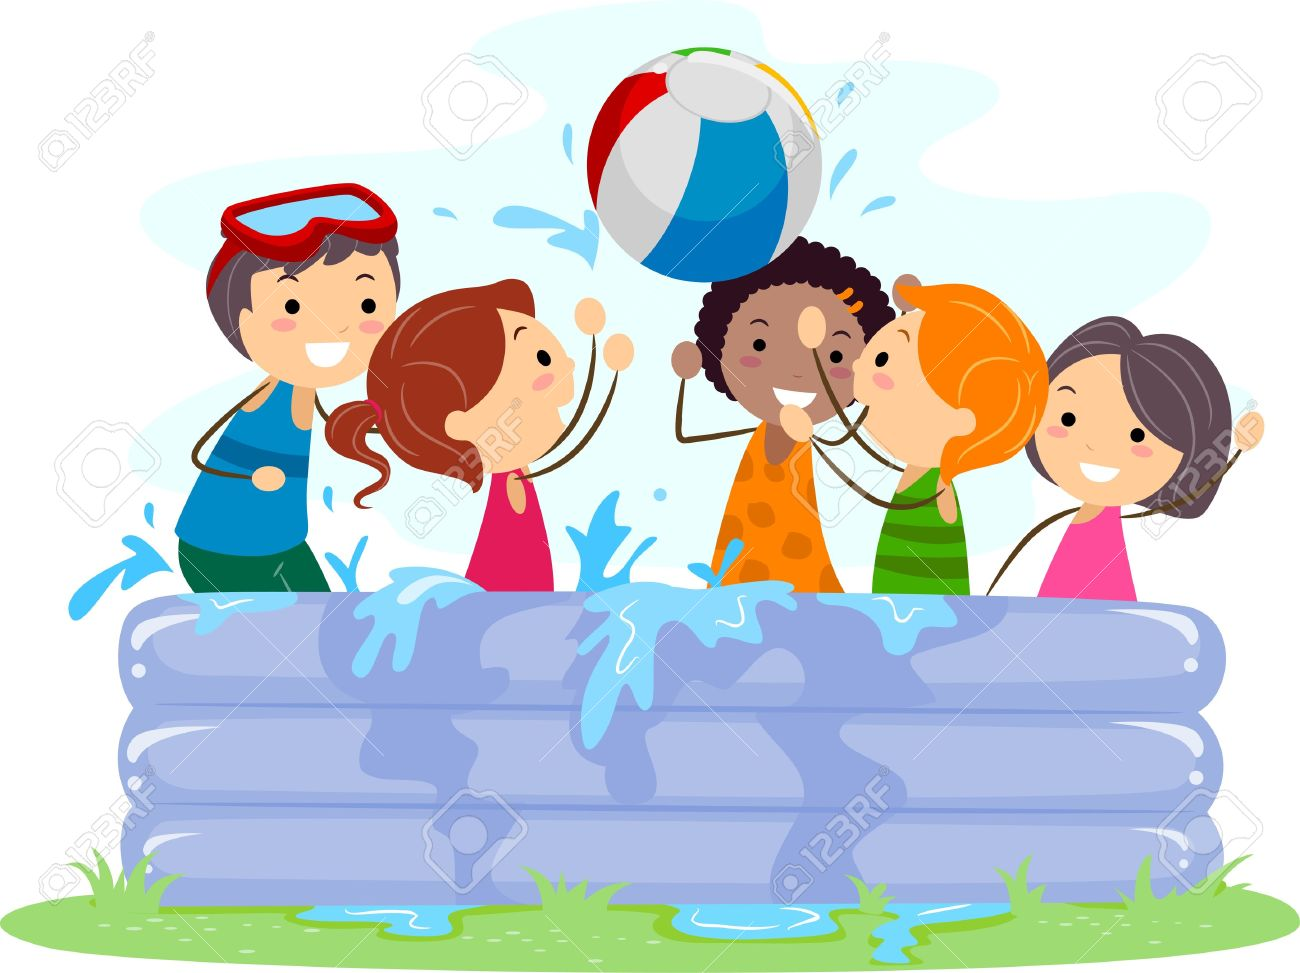 Illustration Of Kids Playing In An Inflatable Pool Stock Photo.